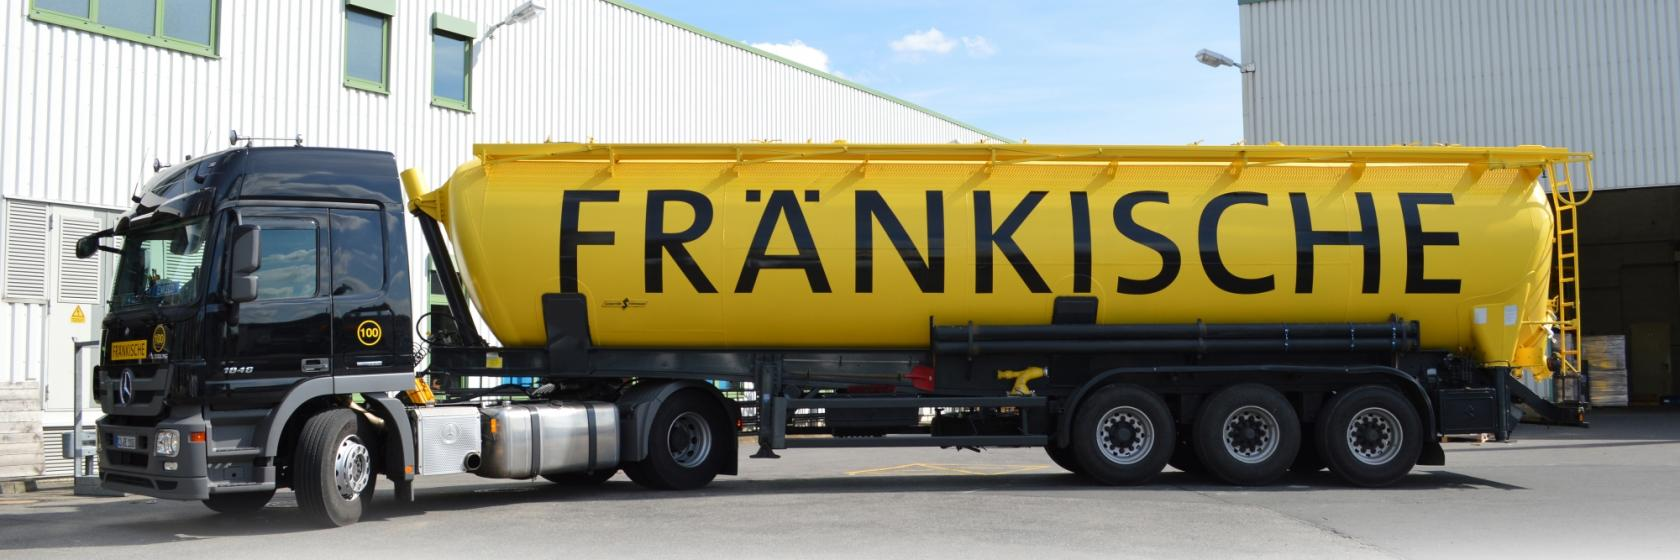 FRÄNKISCHE is an international, growth-oriented family business which offers its strategic partners long-term, dependable and cooperative collaboration.